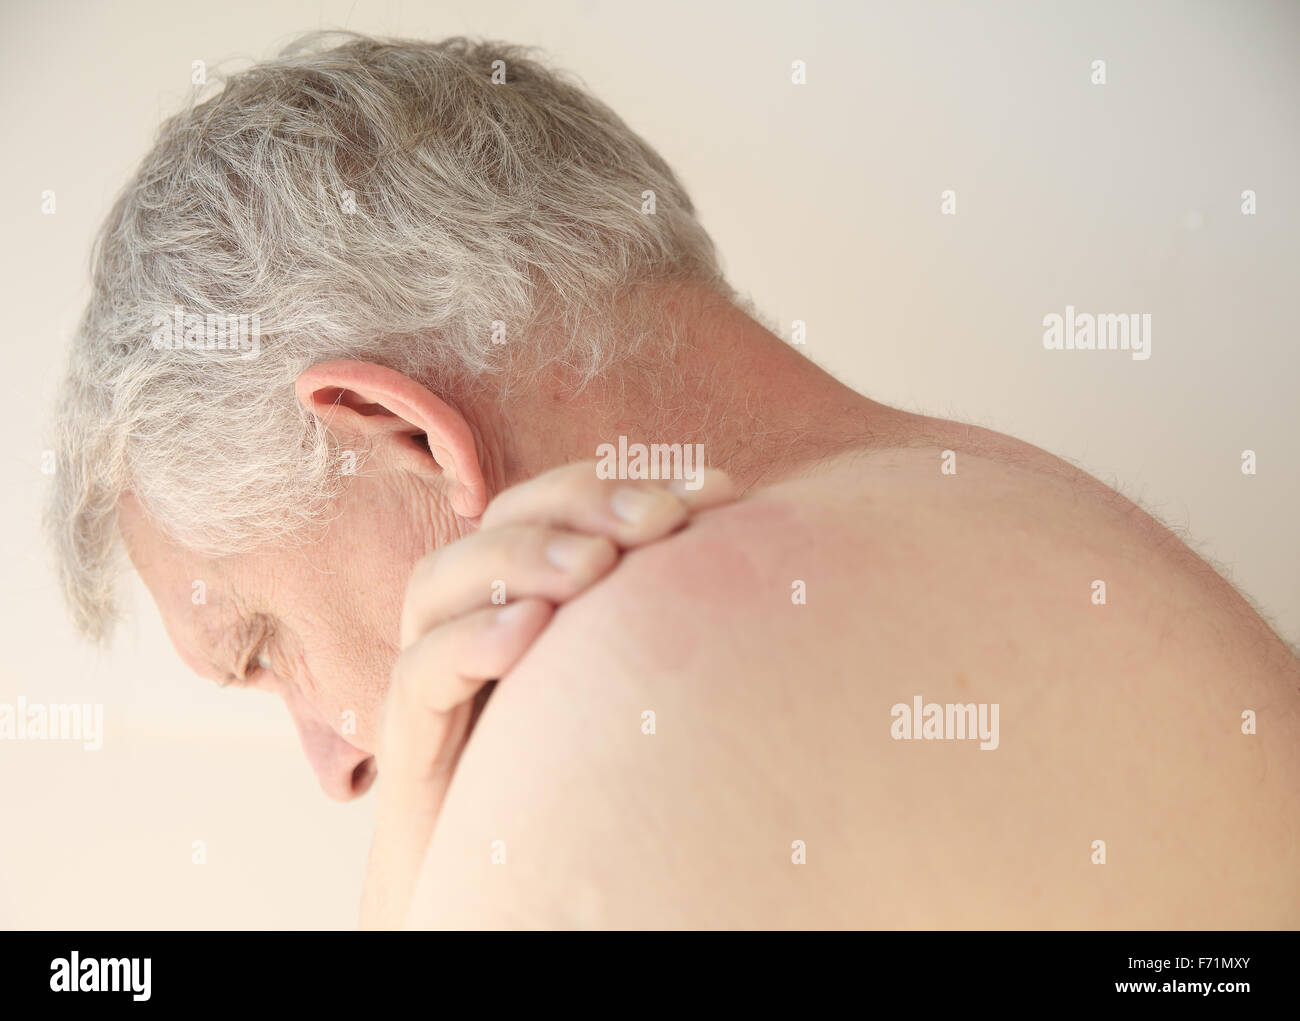 Older man with an itchy rash on his back - Stock Image